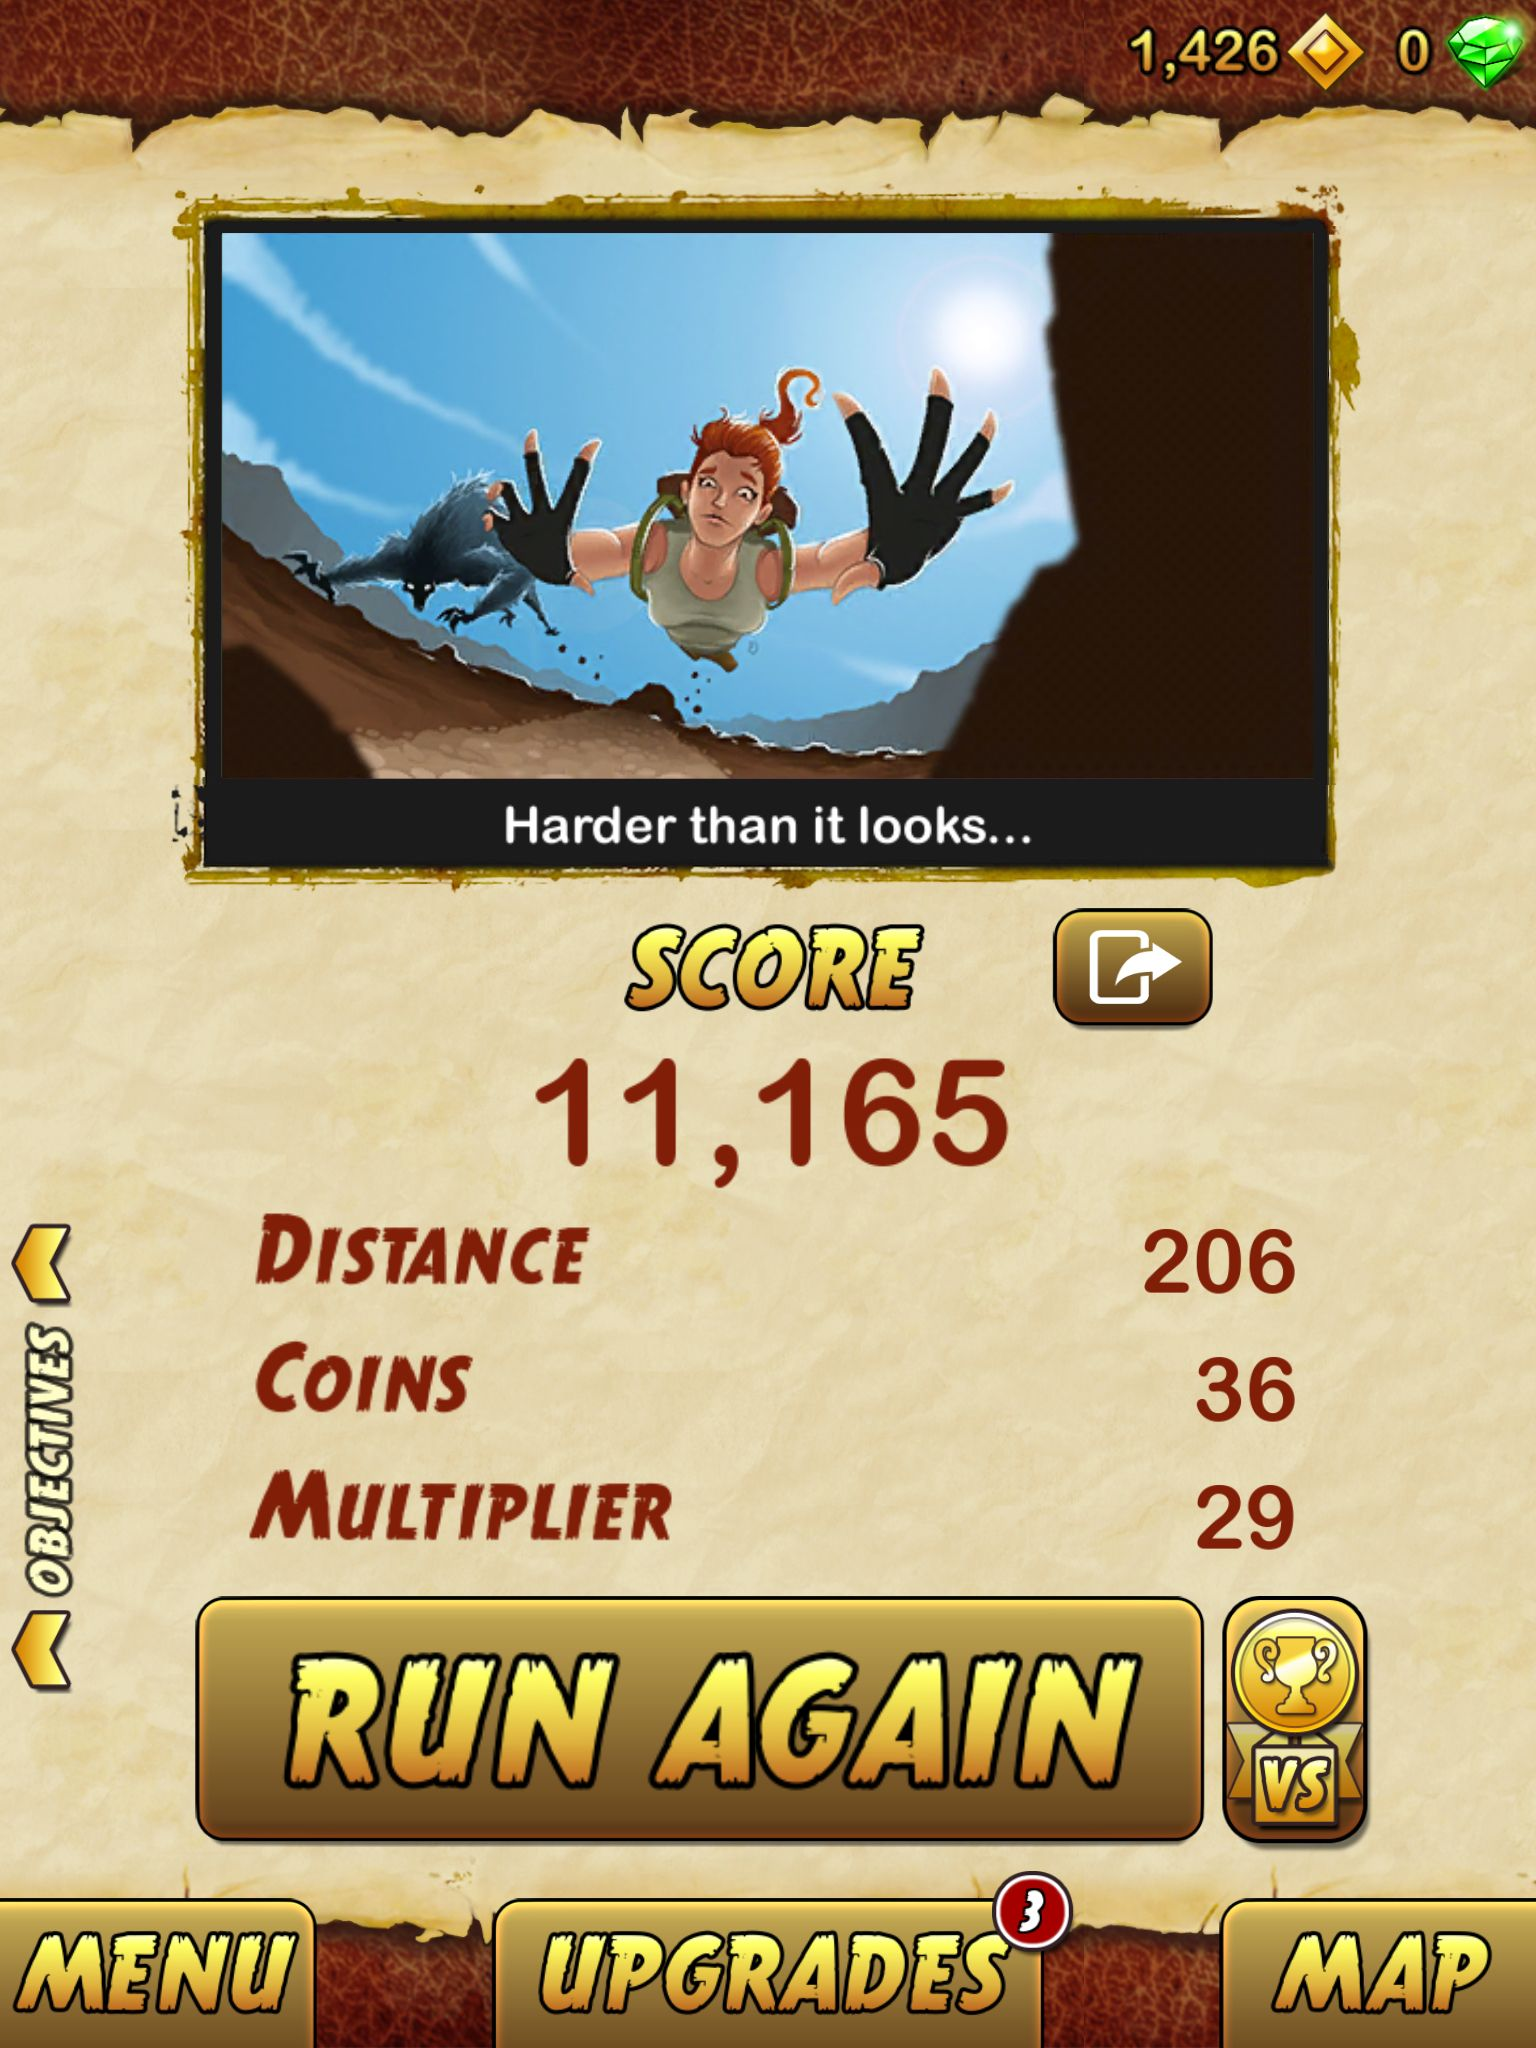 I got 11165 points while